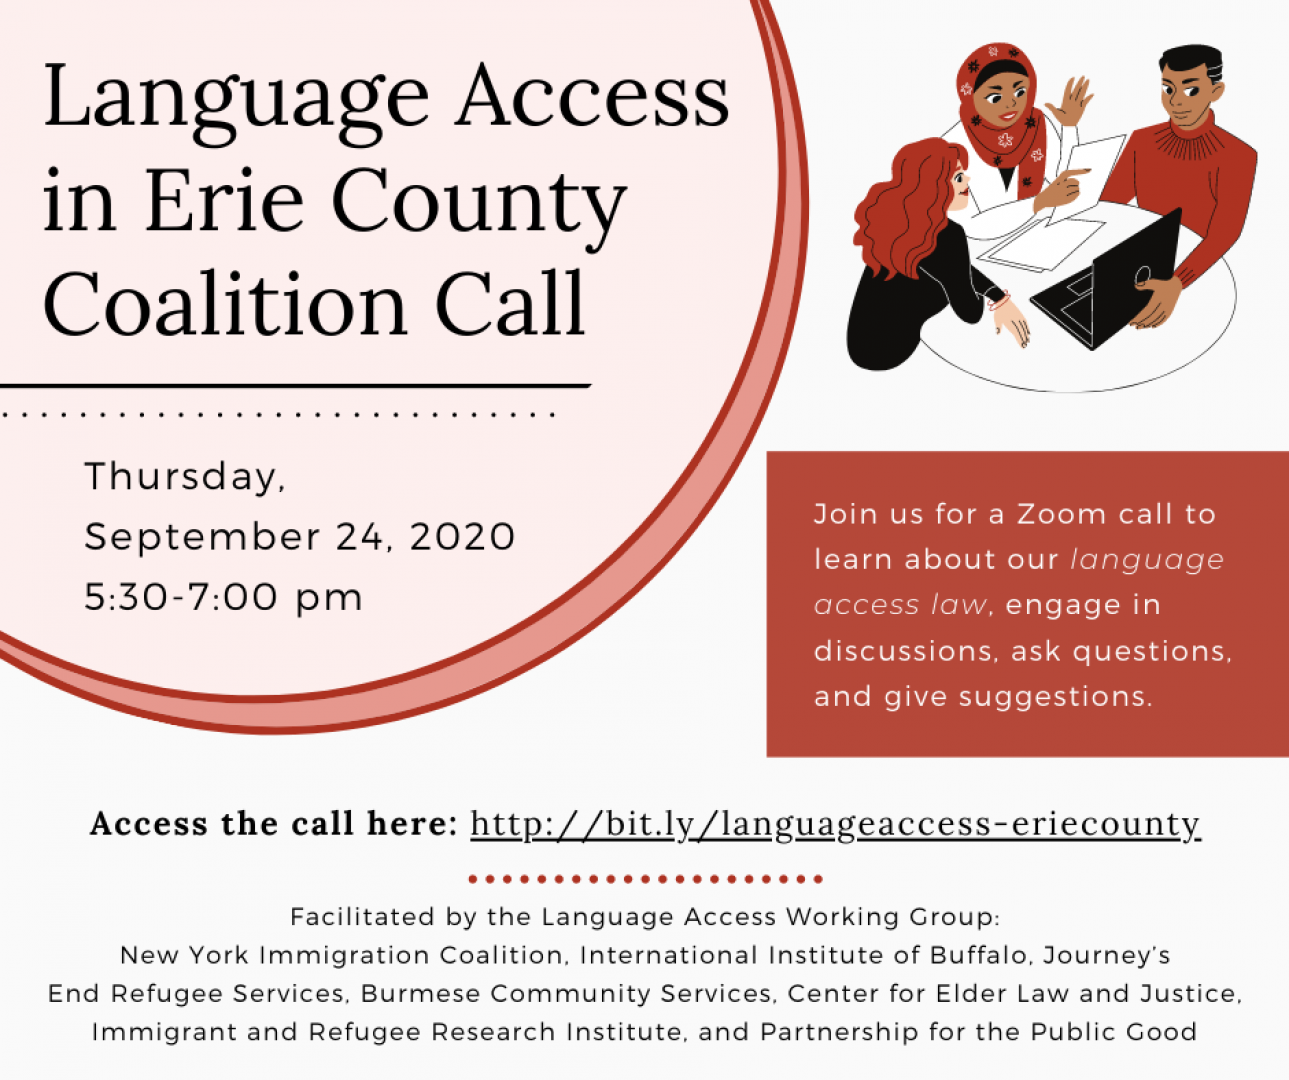 Language Access in Erie County Coalition Call